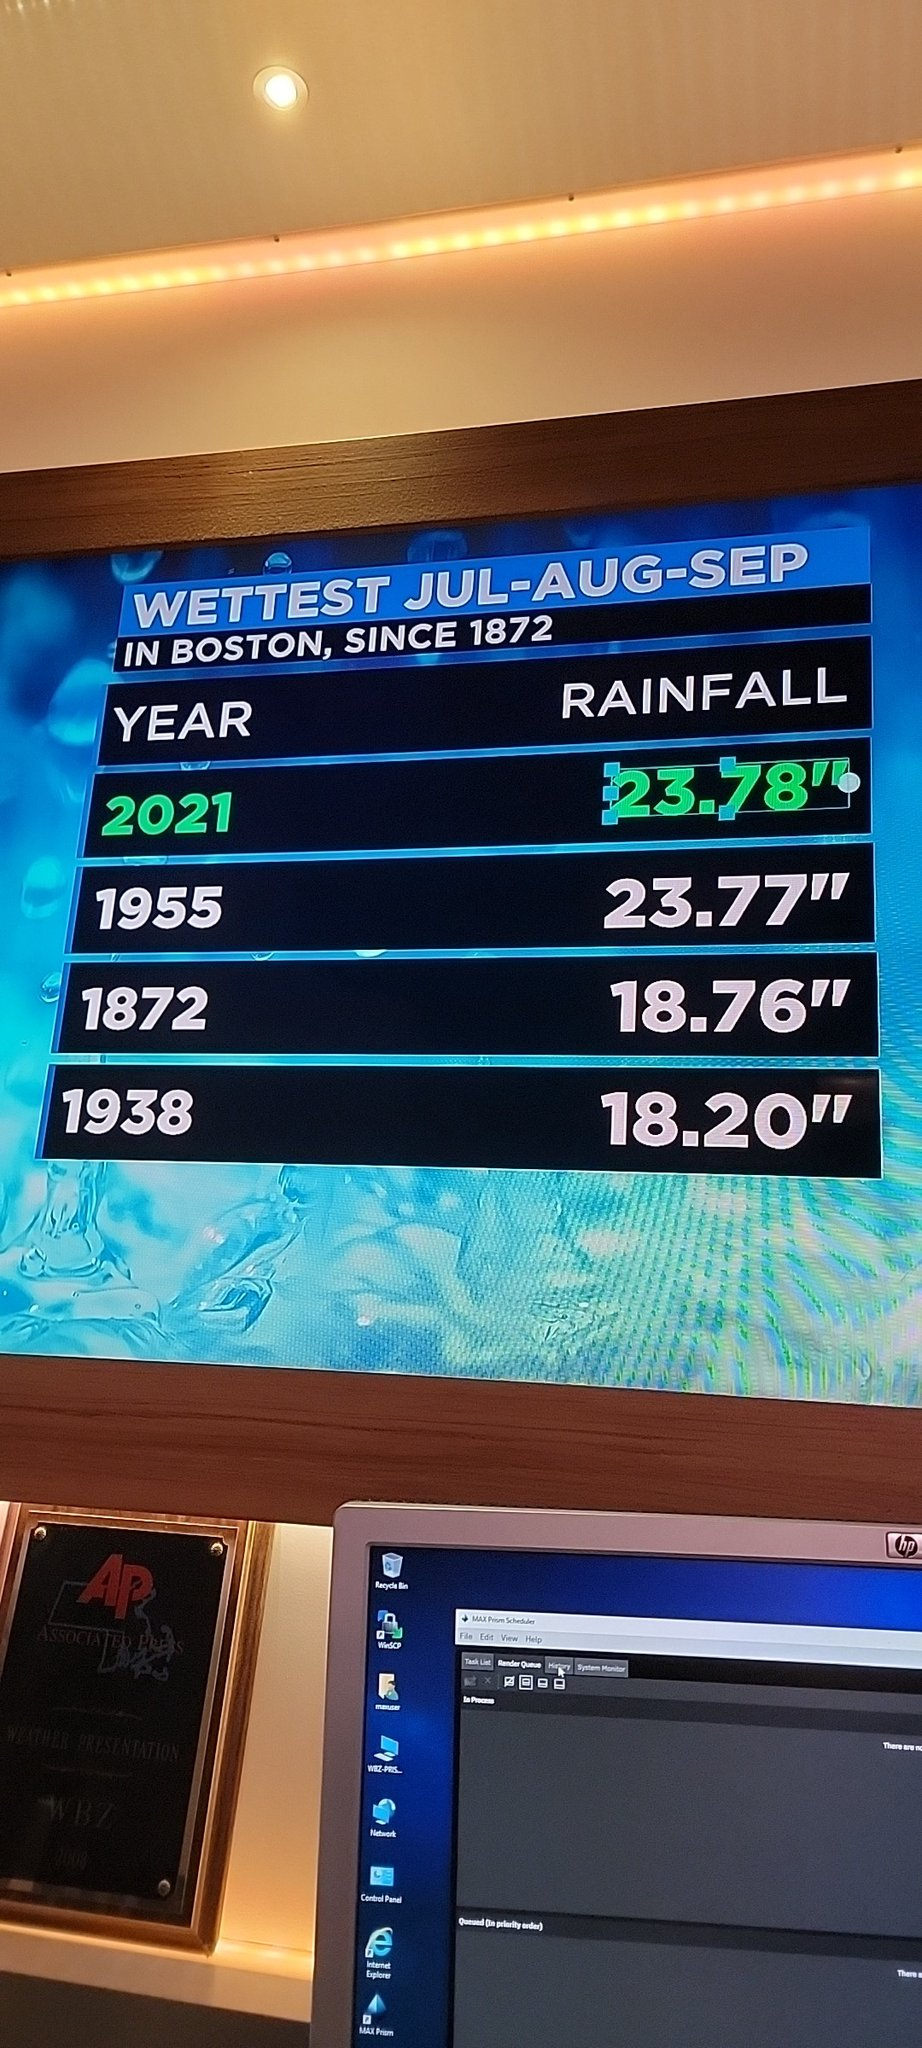 We have now moved into first place for the wettest July through September